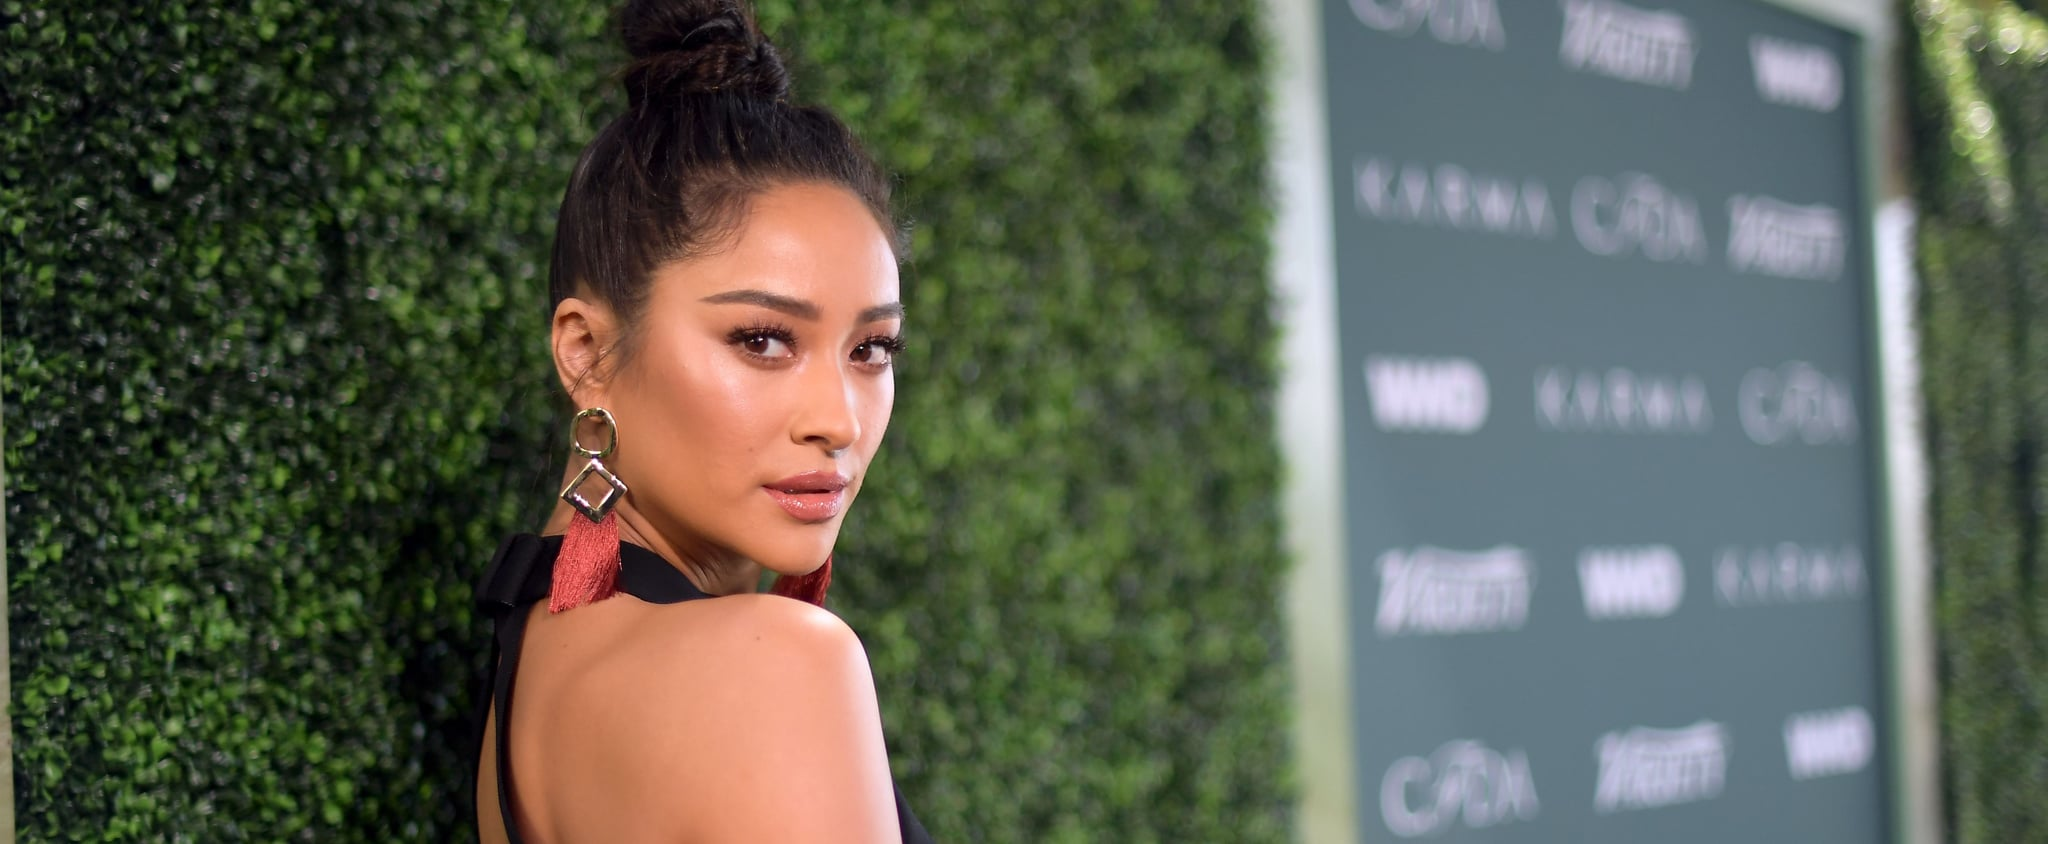 Shay Mitchell on the Pressure to Look Perfect on Instagram